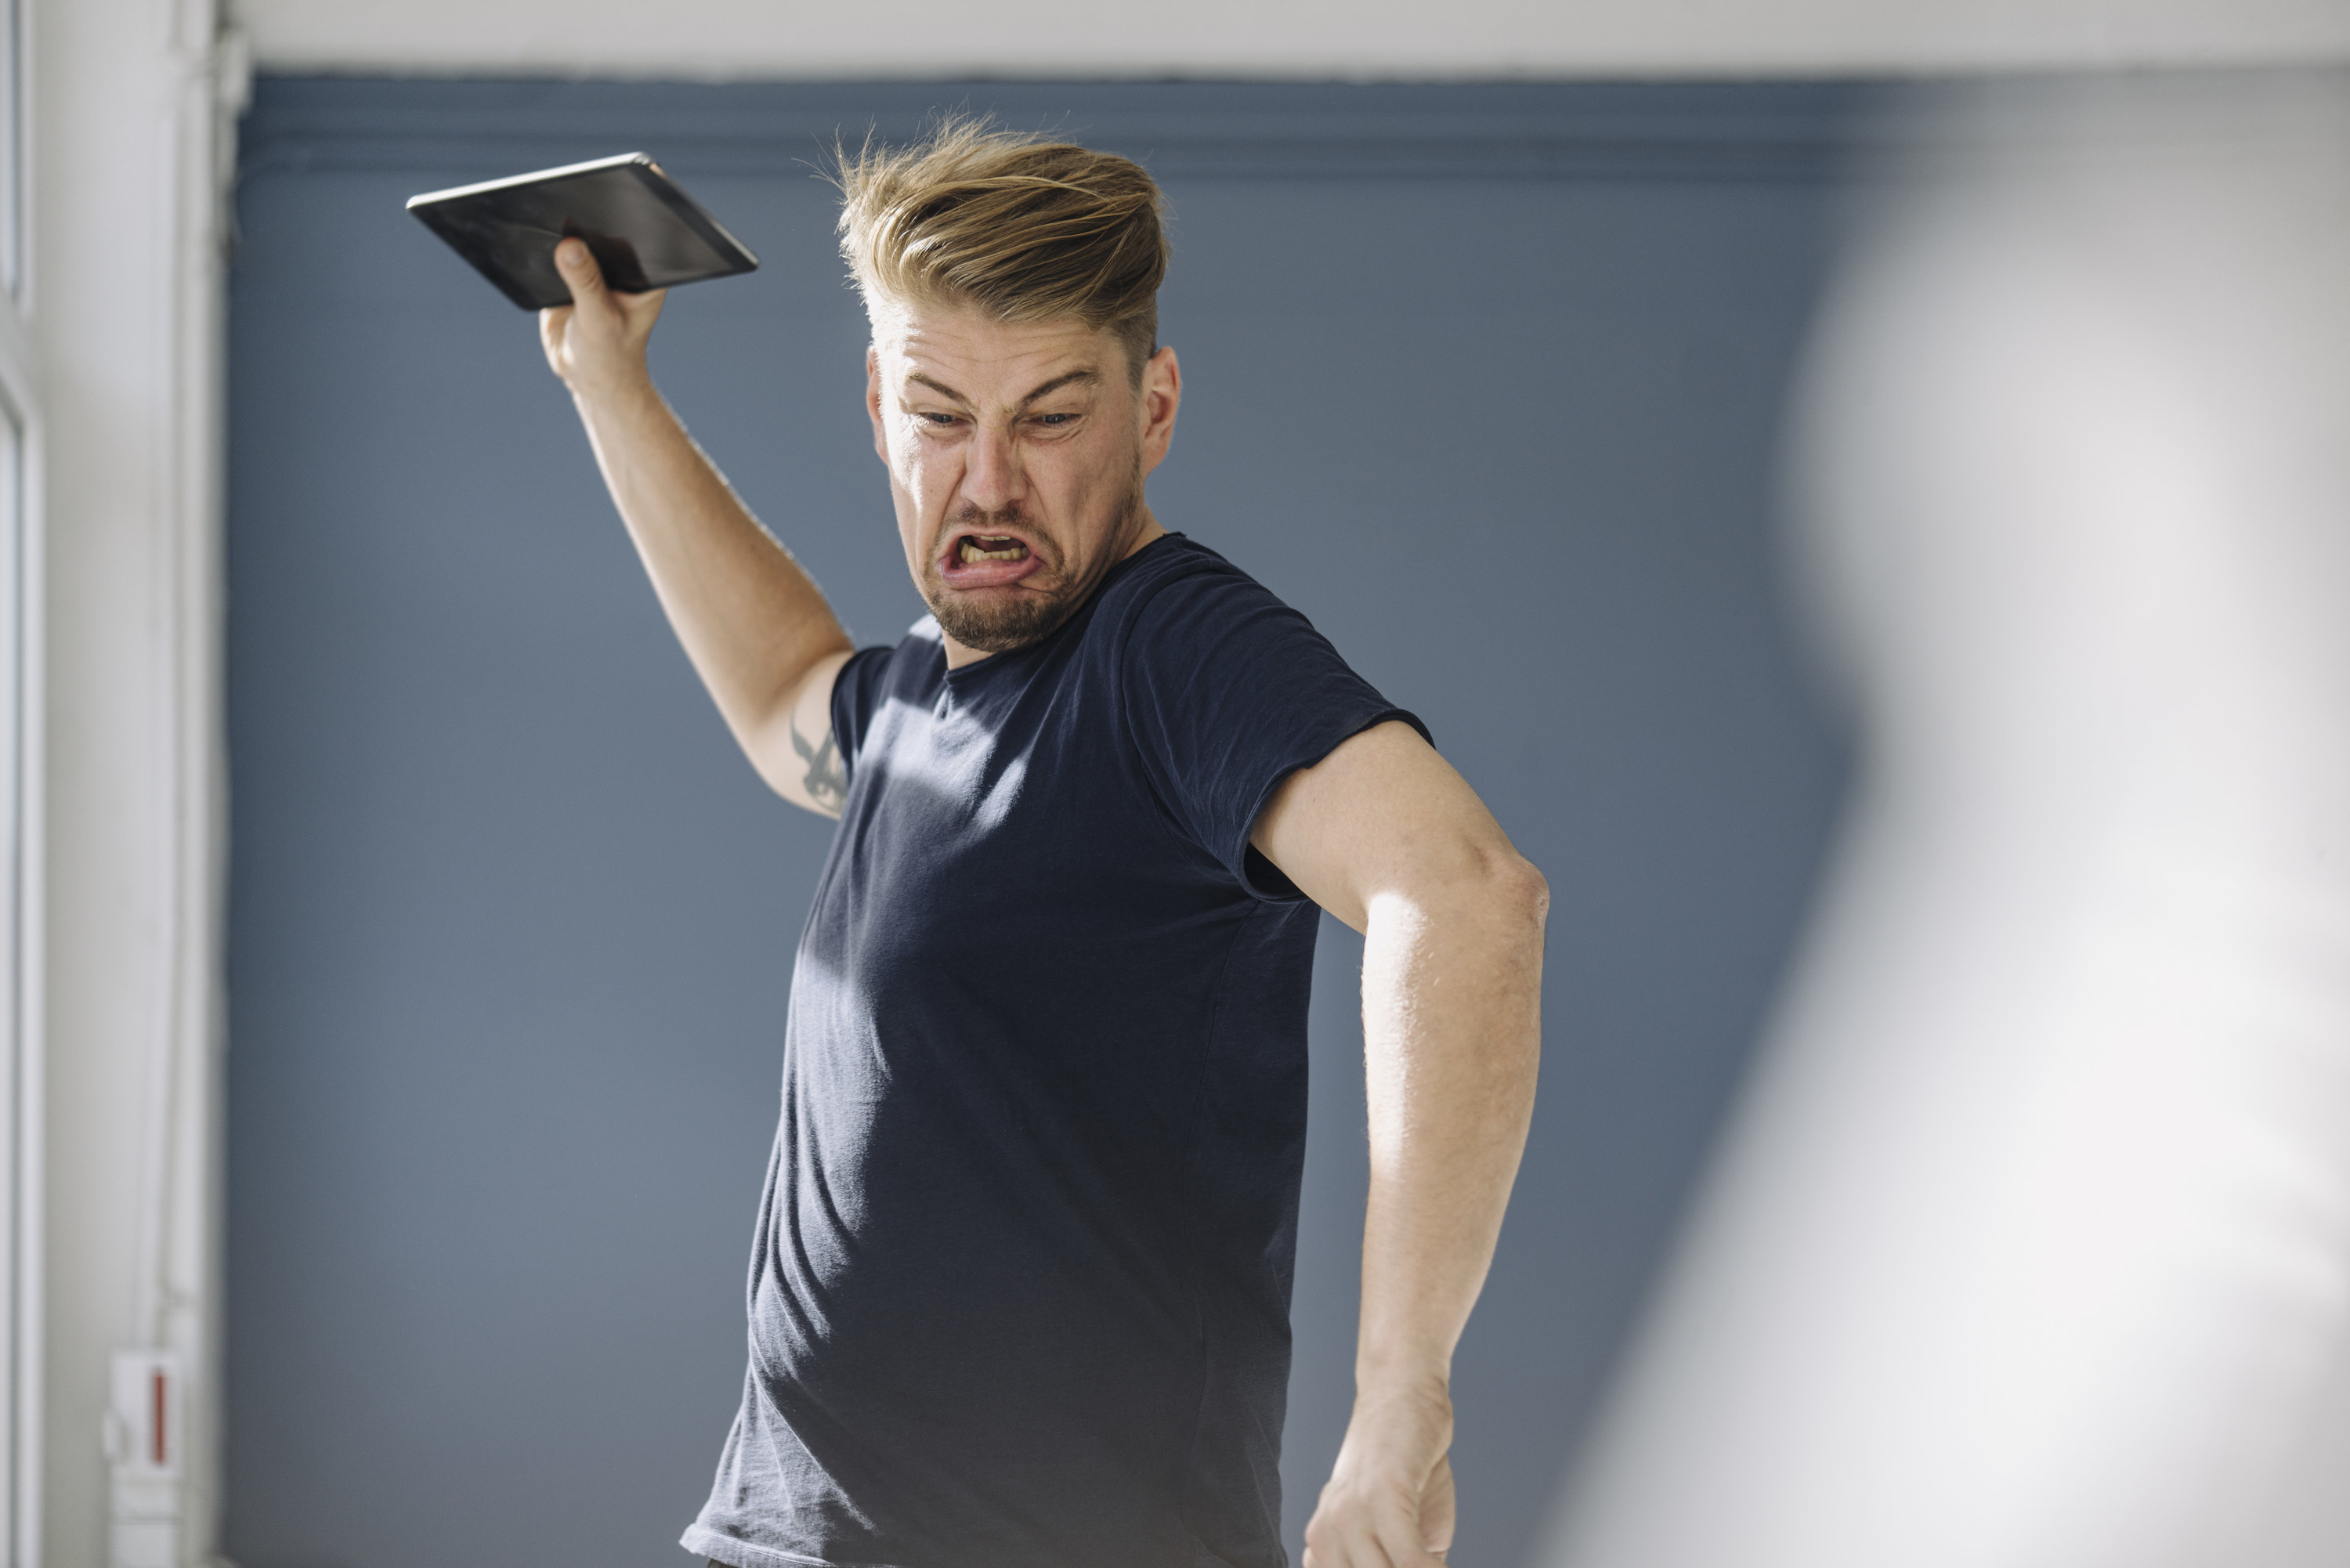 Angry man throwing his tablet on the floor